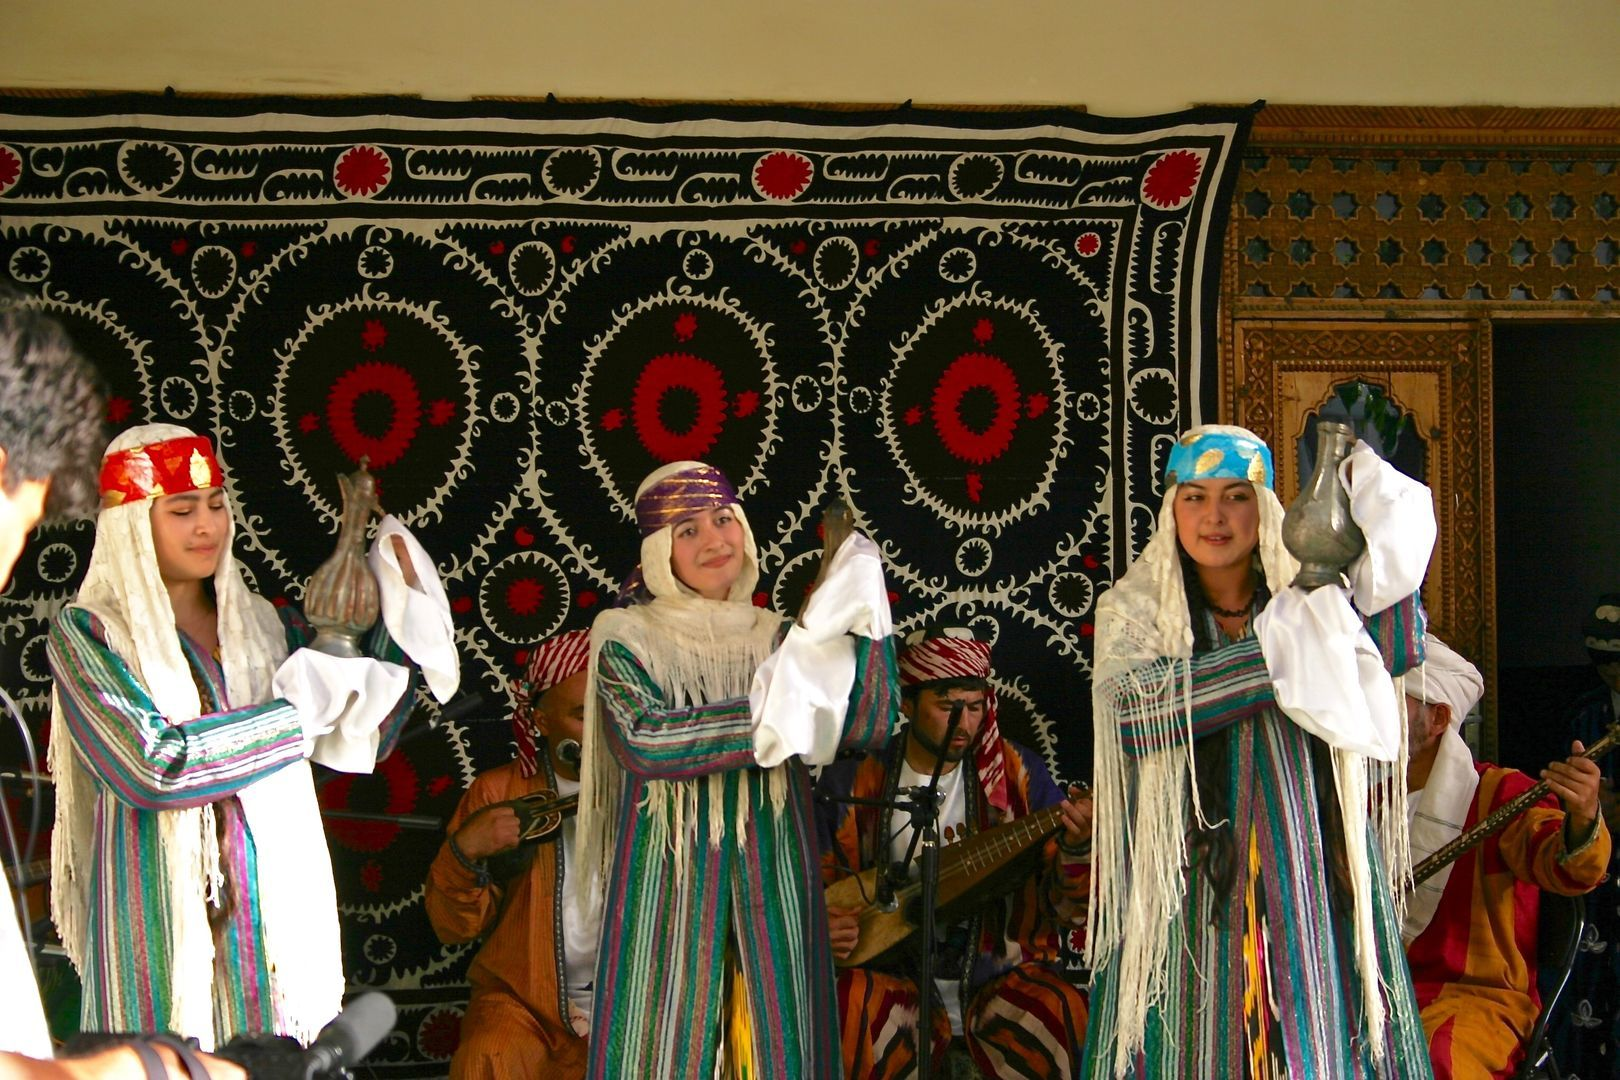 Central Asia festival, Nowruz spring holiday